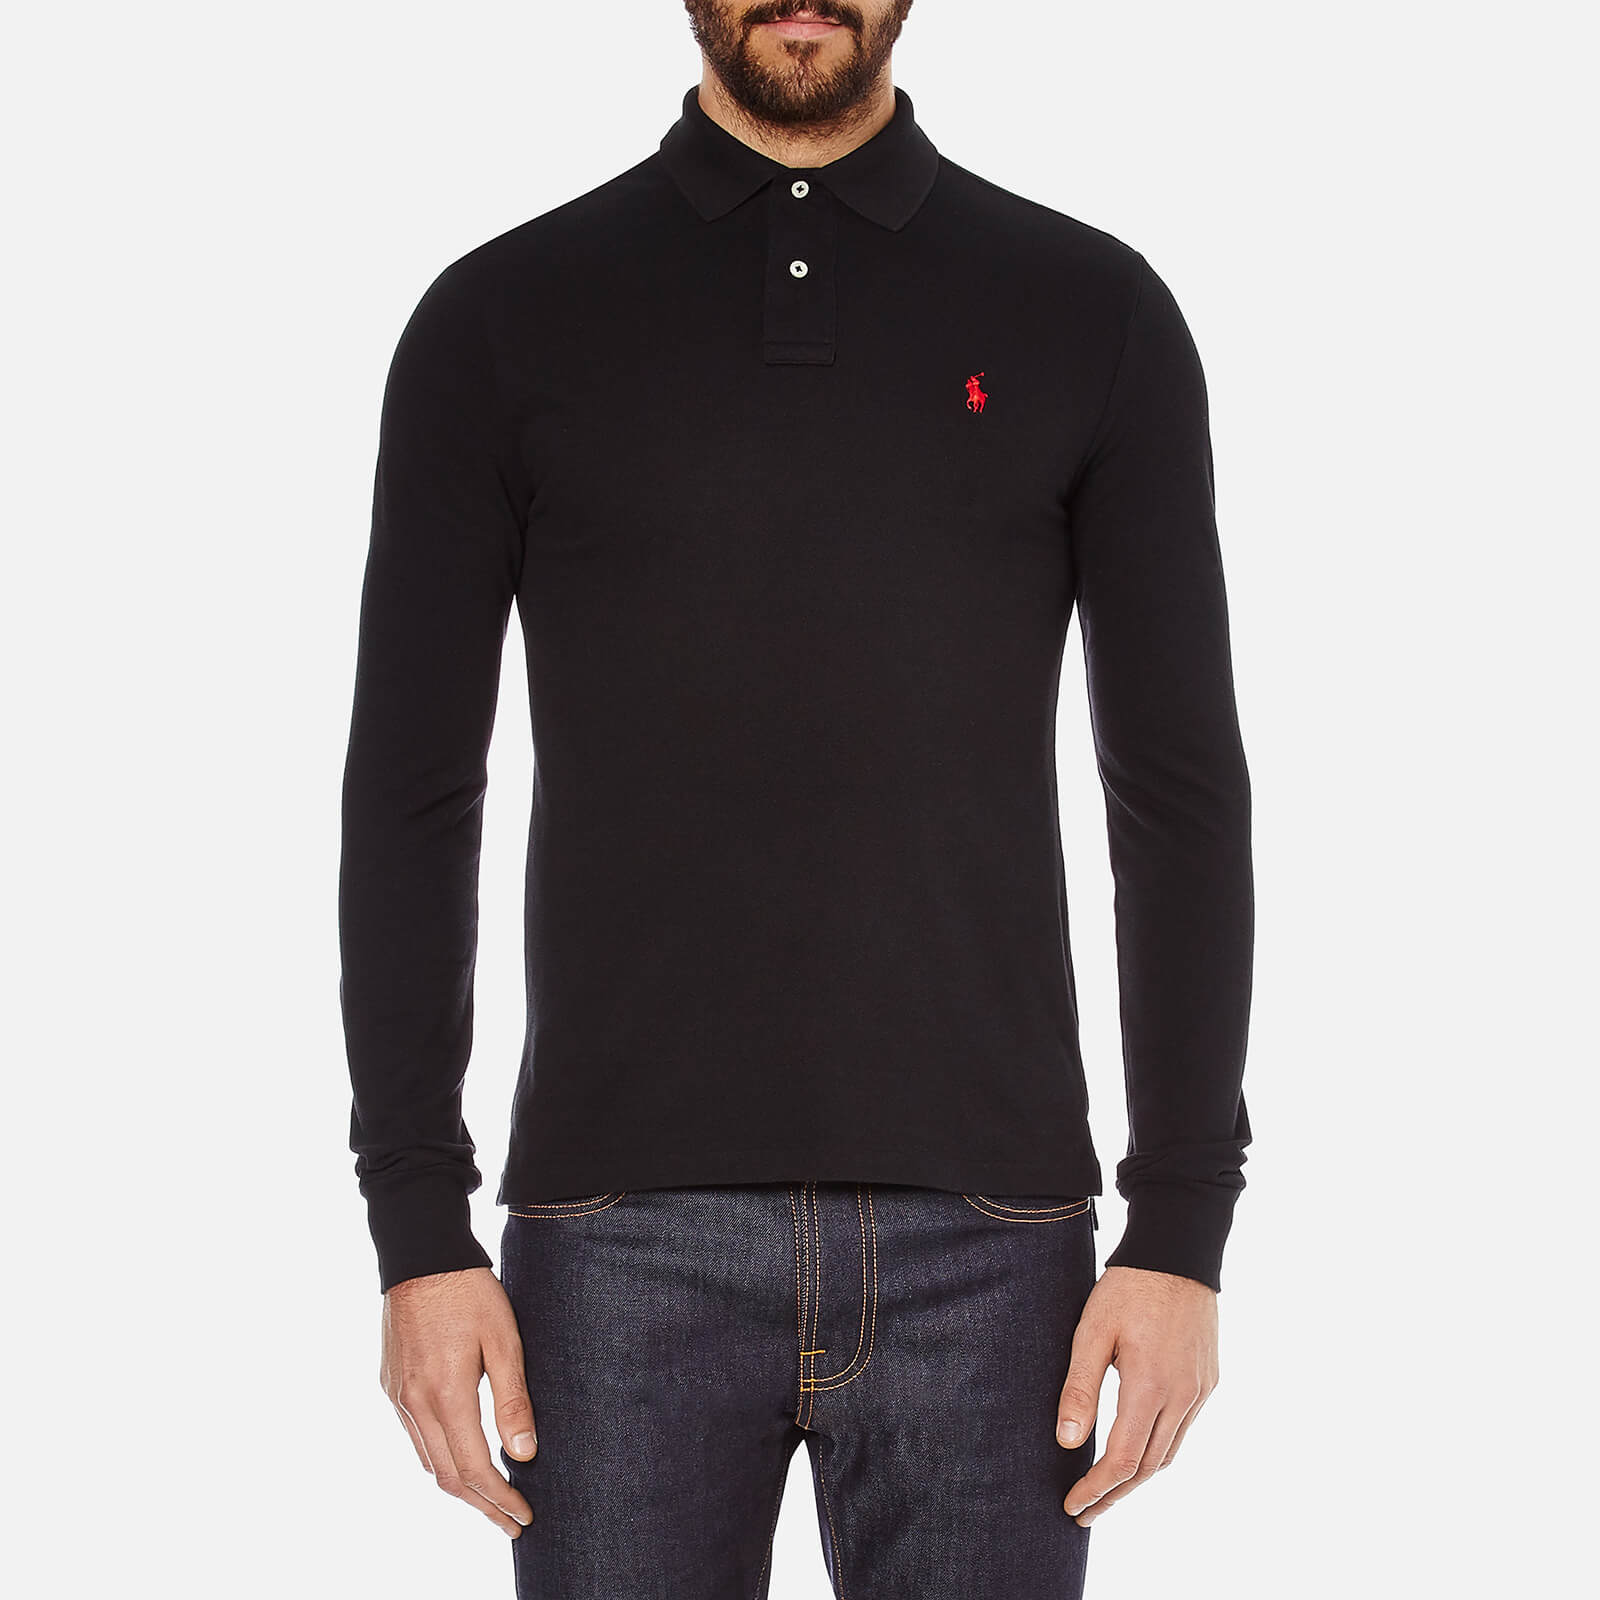 0d47c424aba0 Polo Ralph Lauren Men s Slim Fit Long Sleeved Polo Shirt - Polo Black -  Free UK Delivery over £50